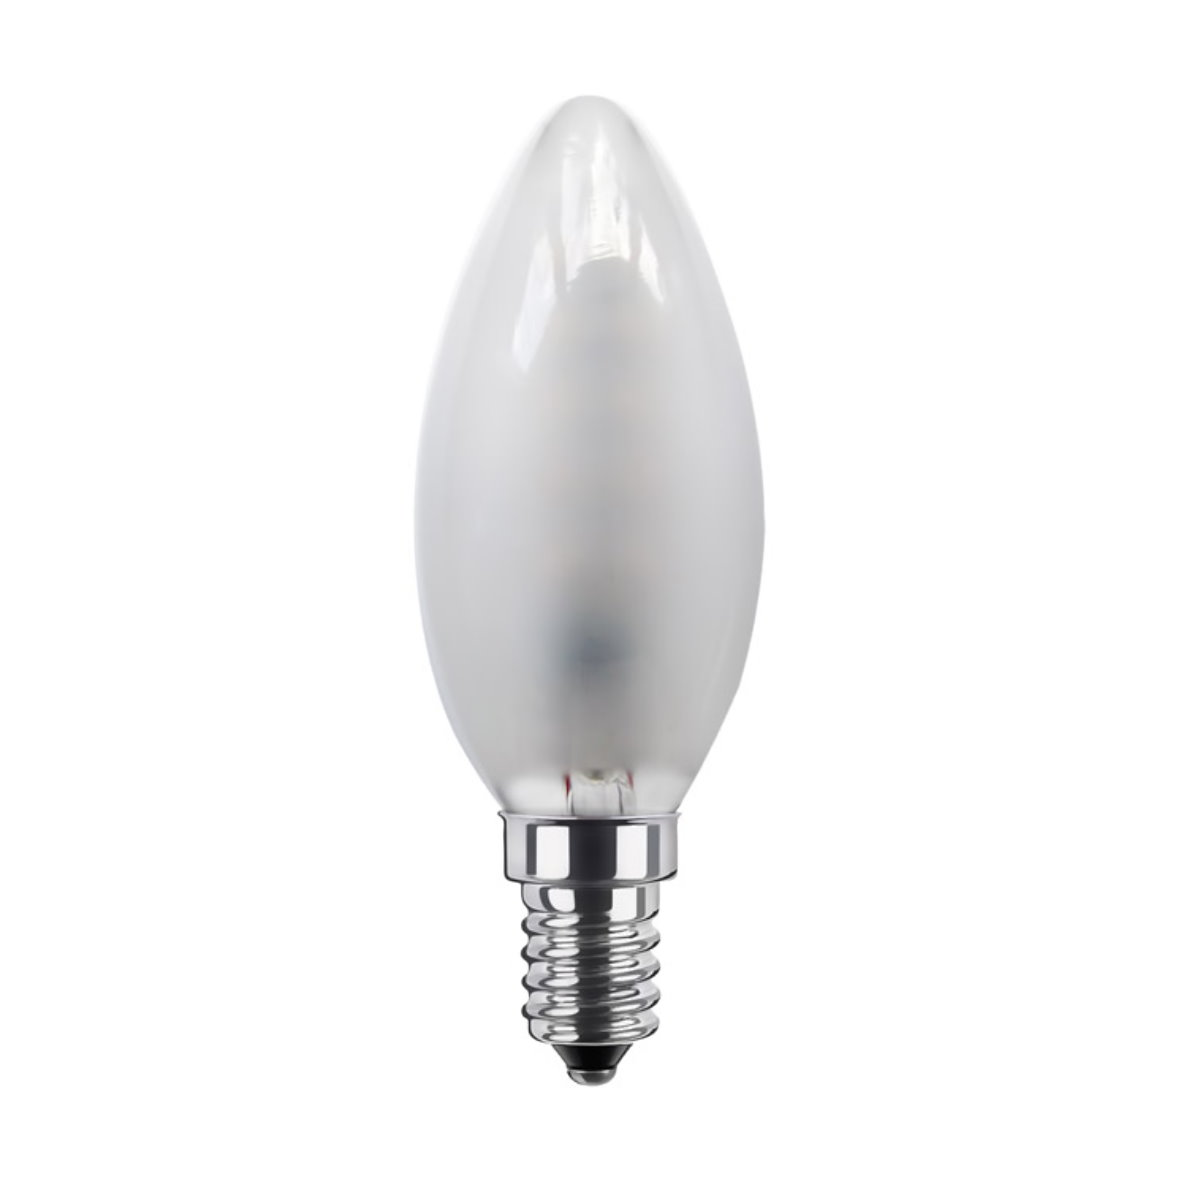 segula smd led kerze e14 leuchtmittel dimmbar dimmable birne bulb candle lampe ebay. Black Bedroom Furniture Sets. Home Design Ideas